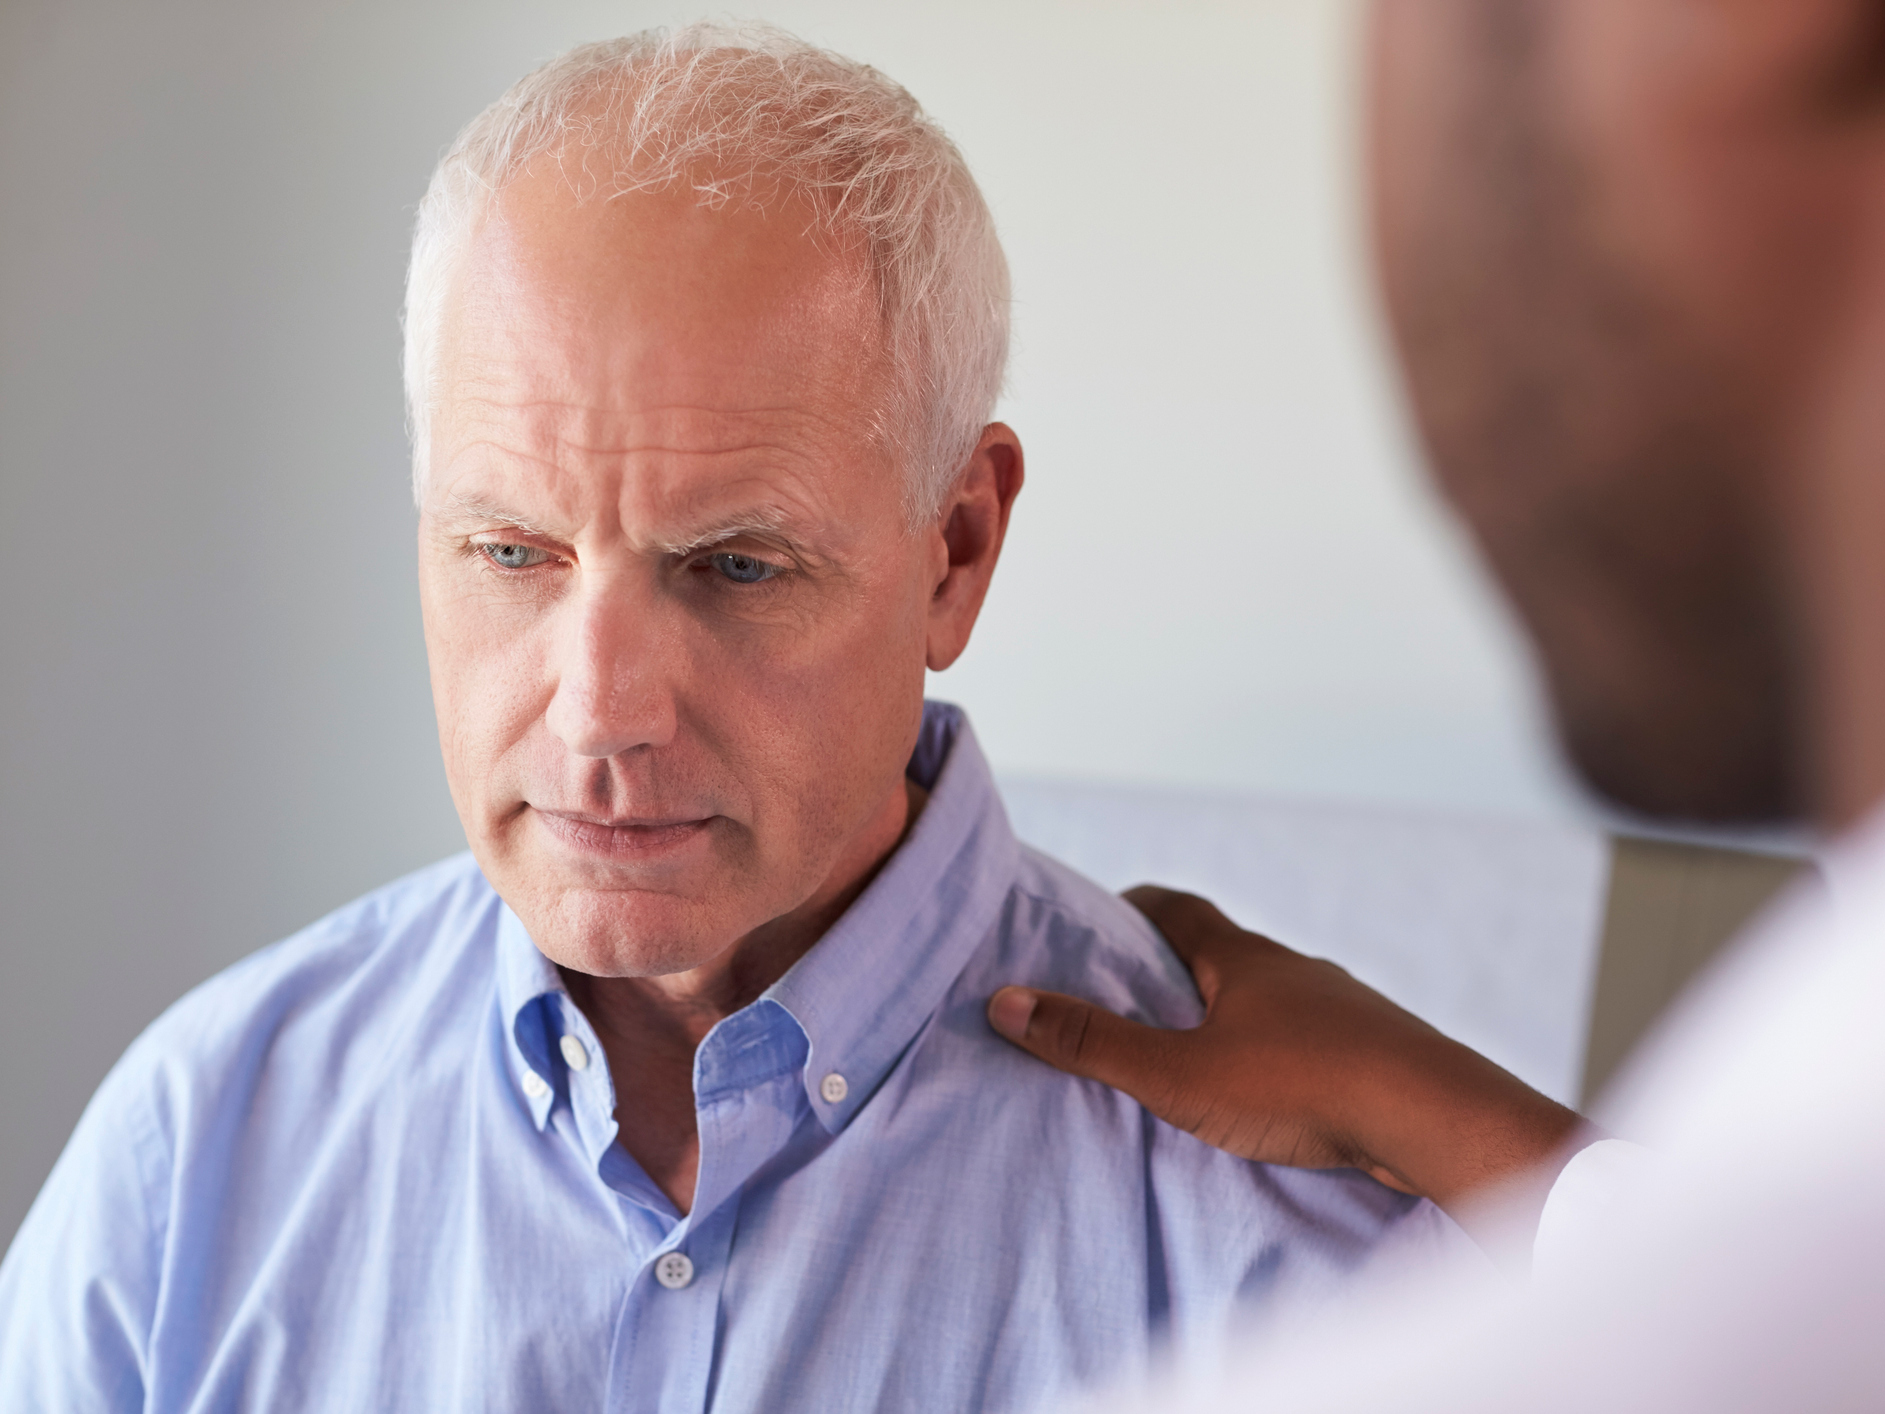 The best type of therapy for incontinence following prostate surgery